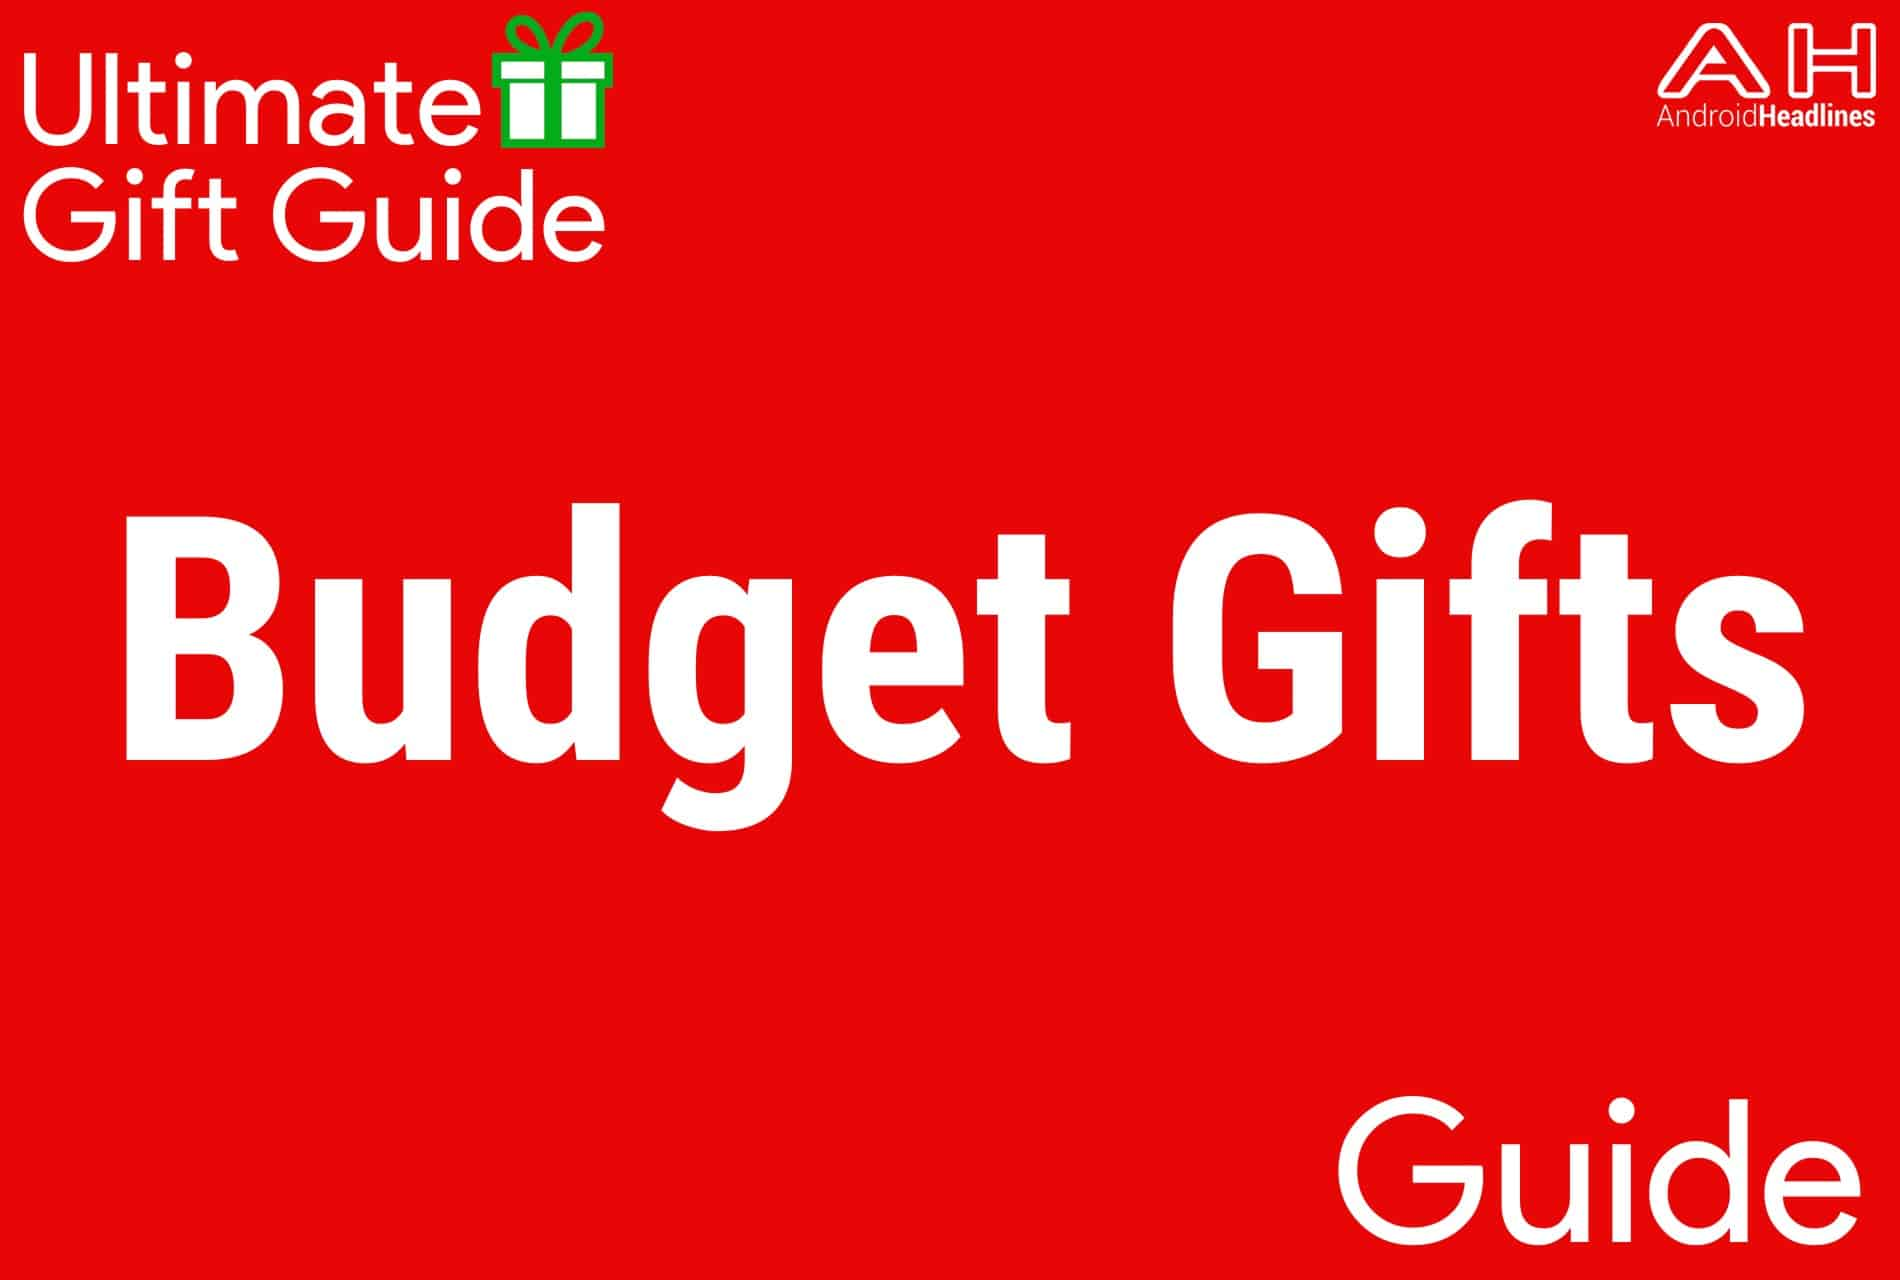 Gifts On Budget- Holiday Gift Guide 2015-2016